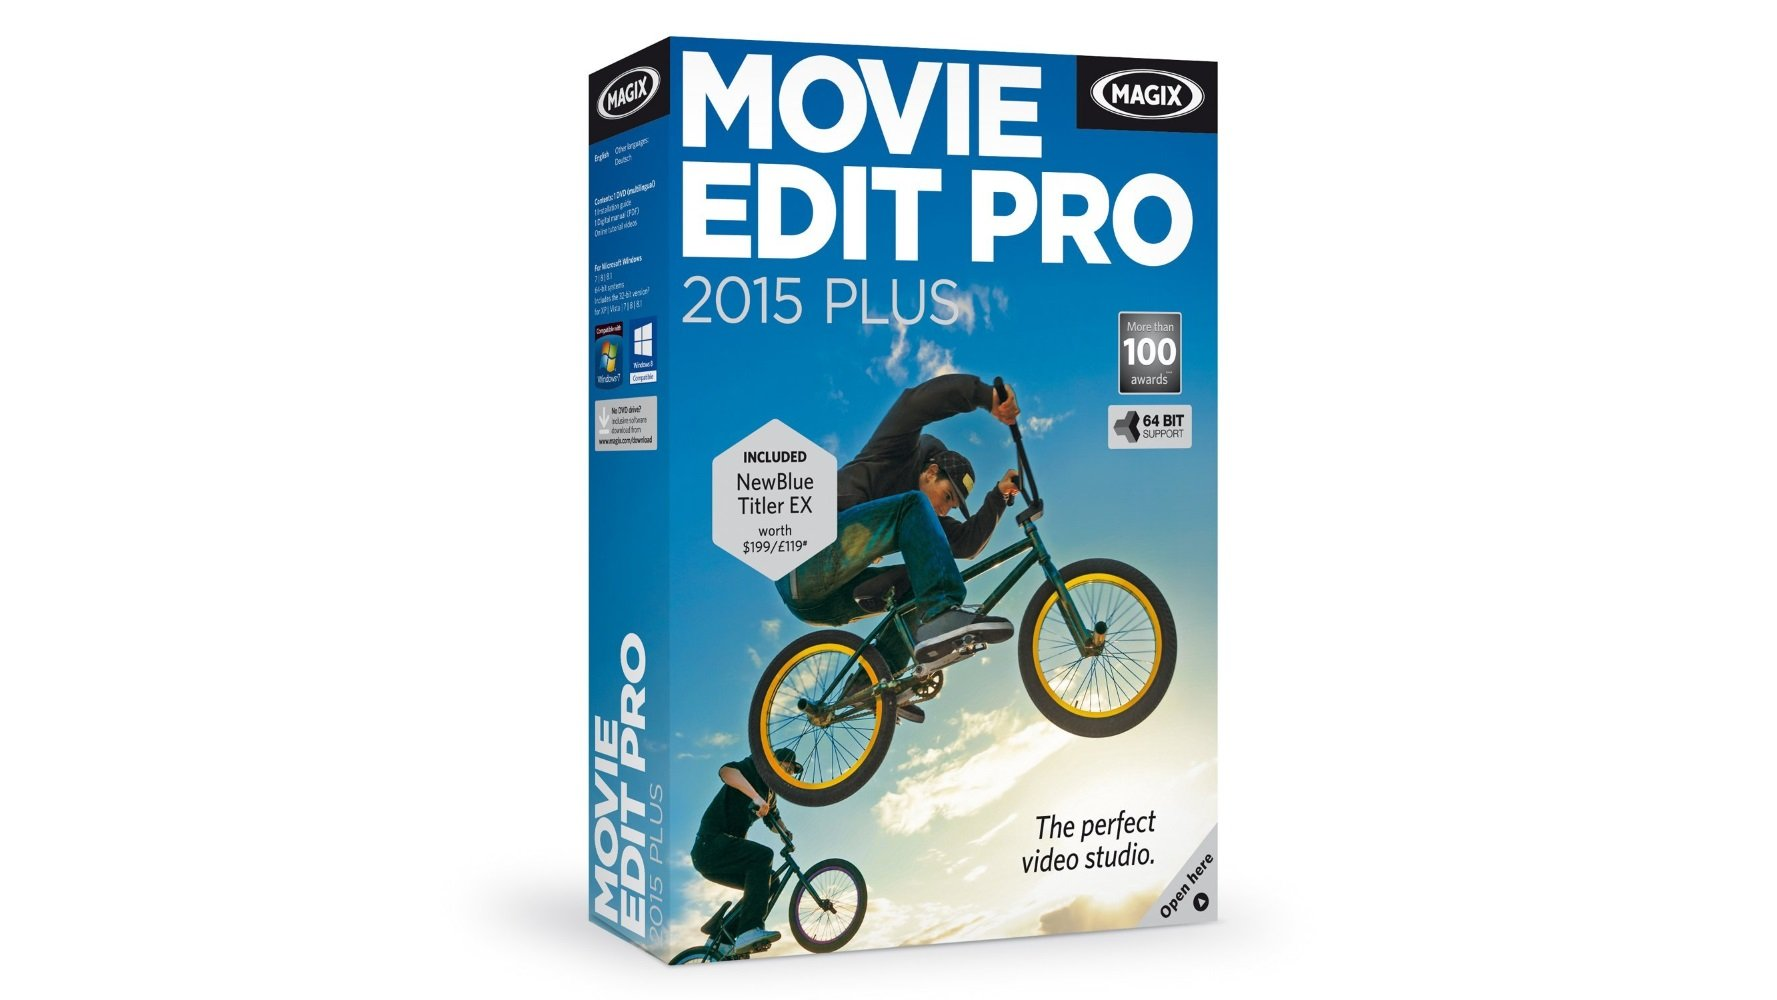 Magix Movie Edit Pro 2015 Review Expert Reviews